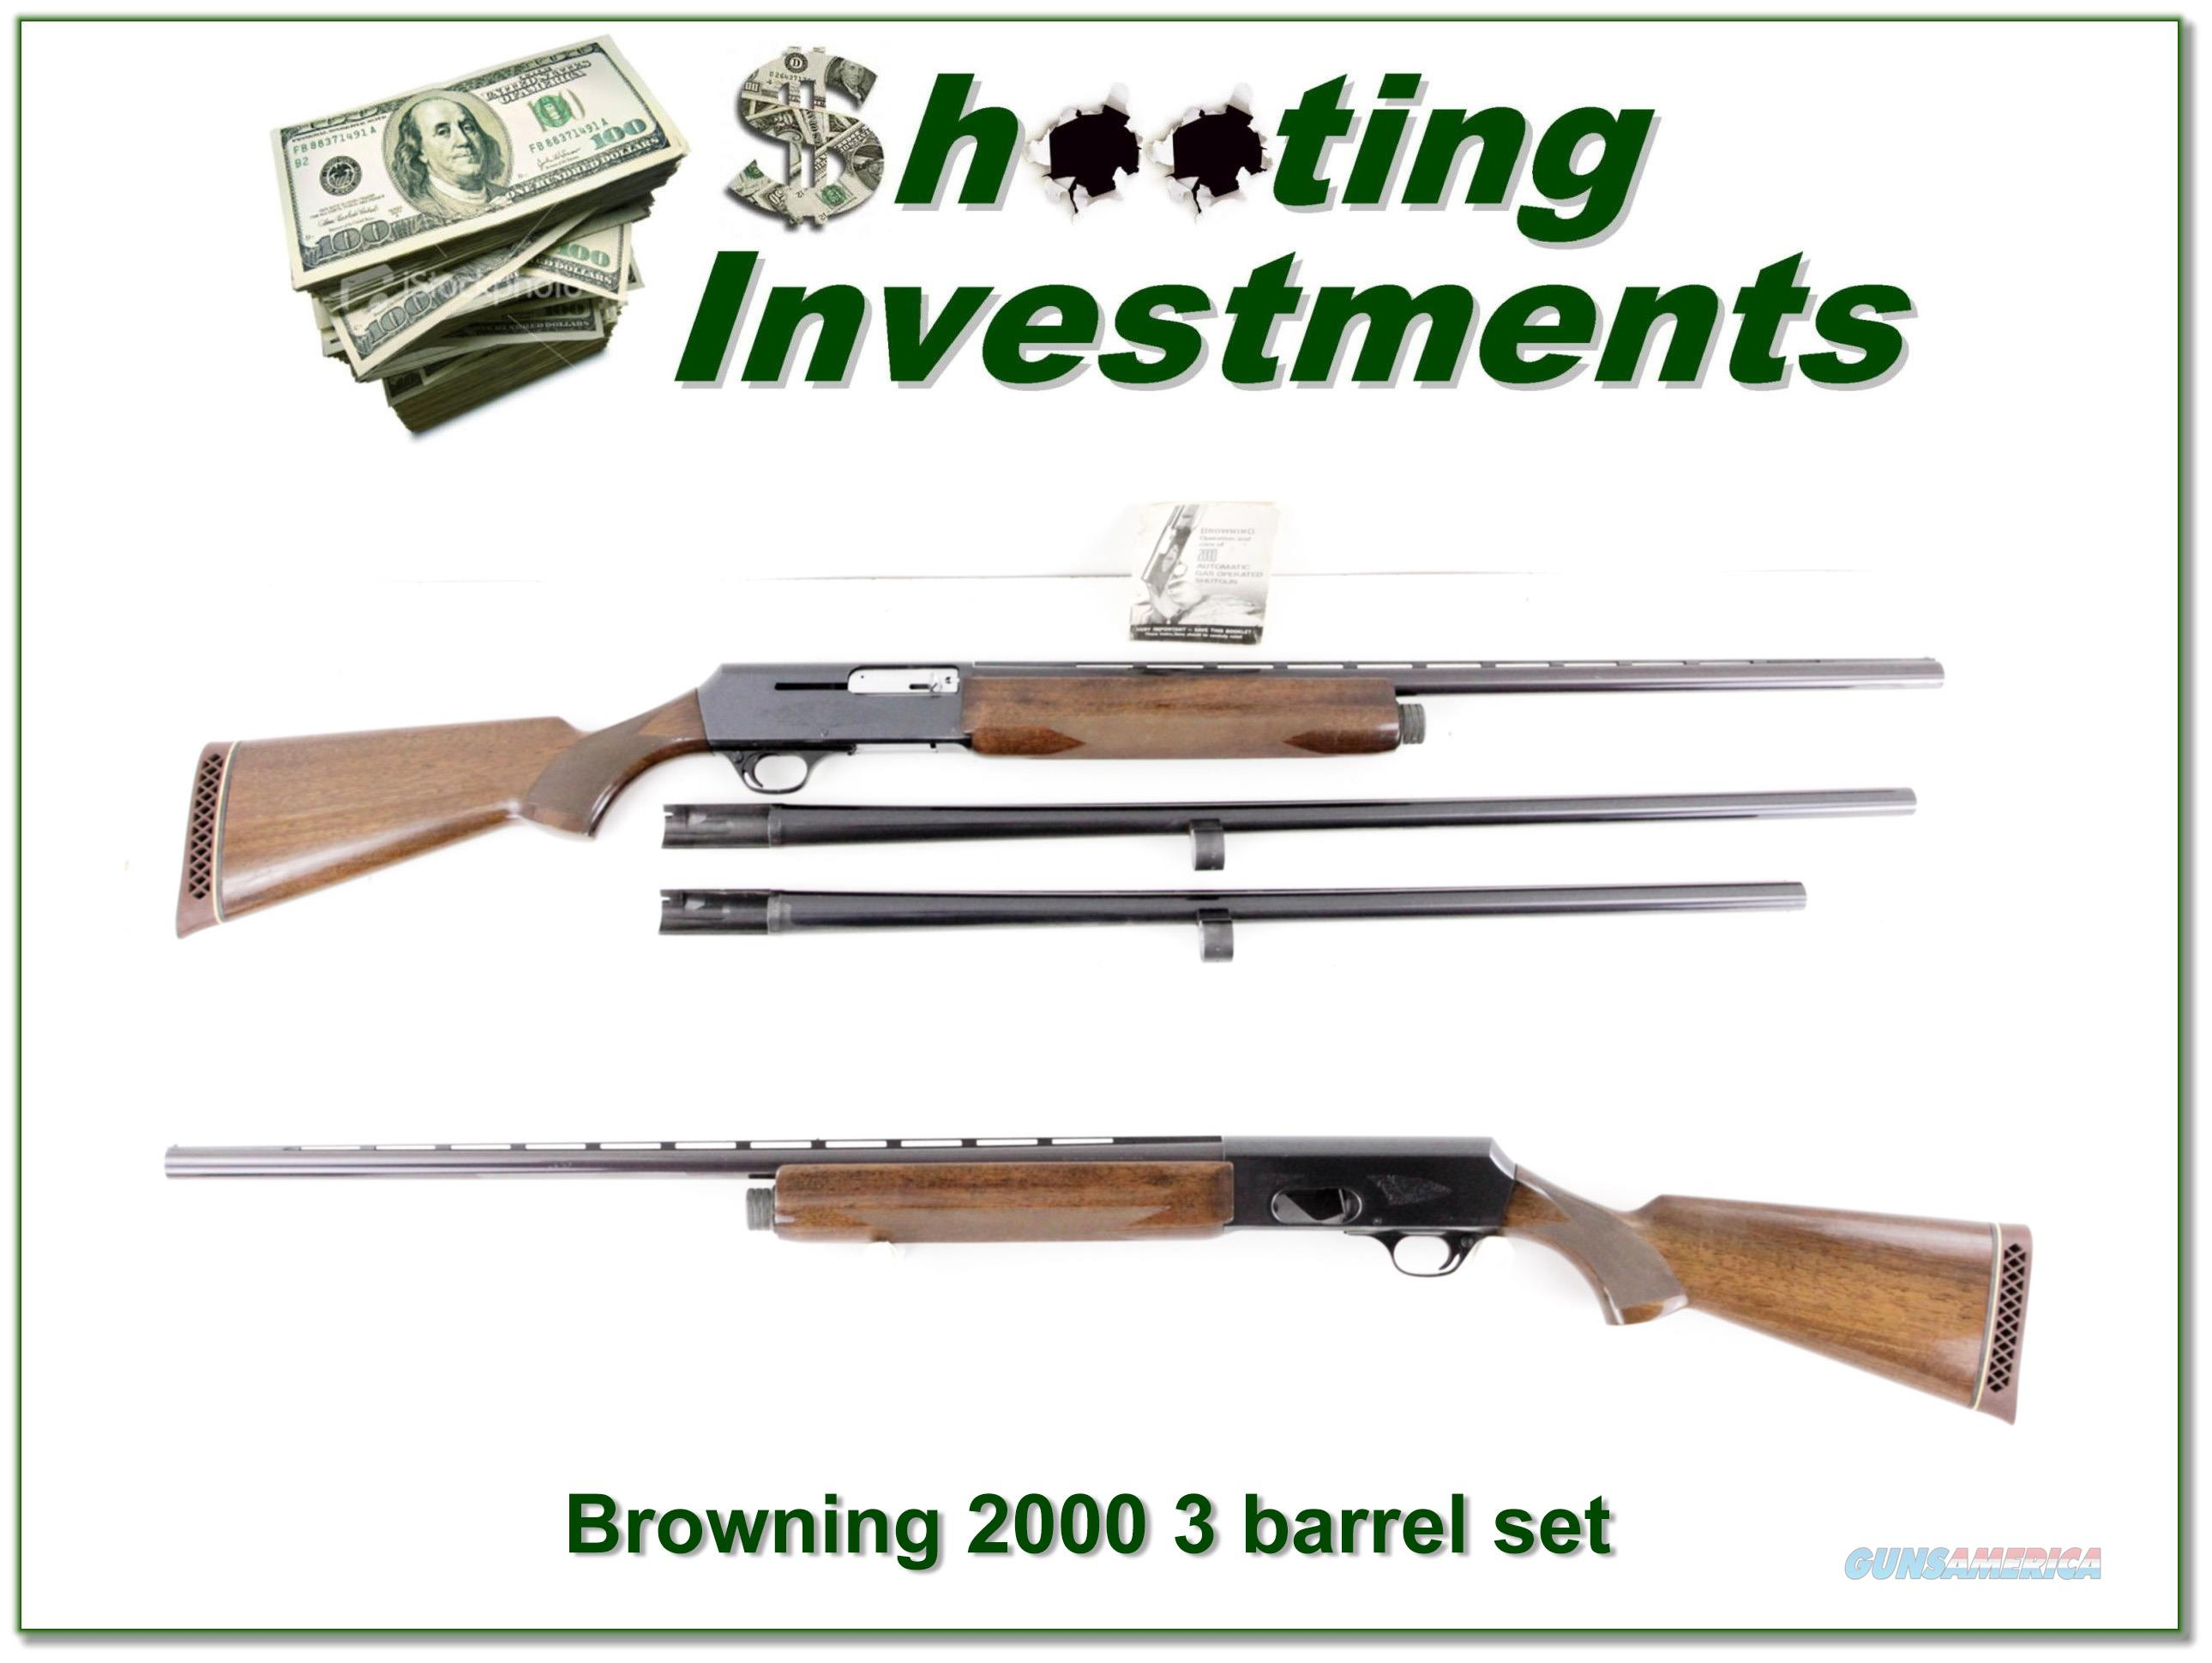 Browning 2000 75 Belgium 12 Ga 3-barrel set!  Guns > Shotguns > Browning Shotguns > Autoloaders > Hunting